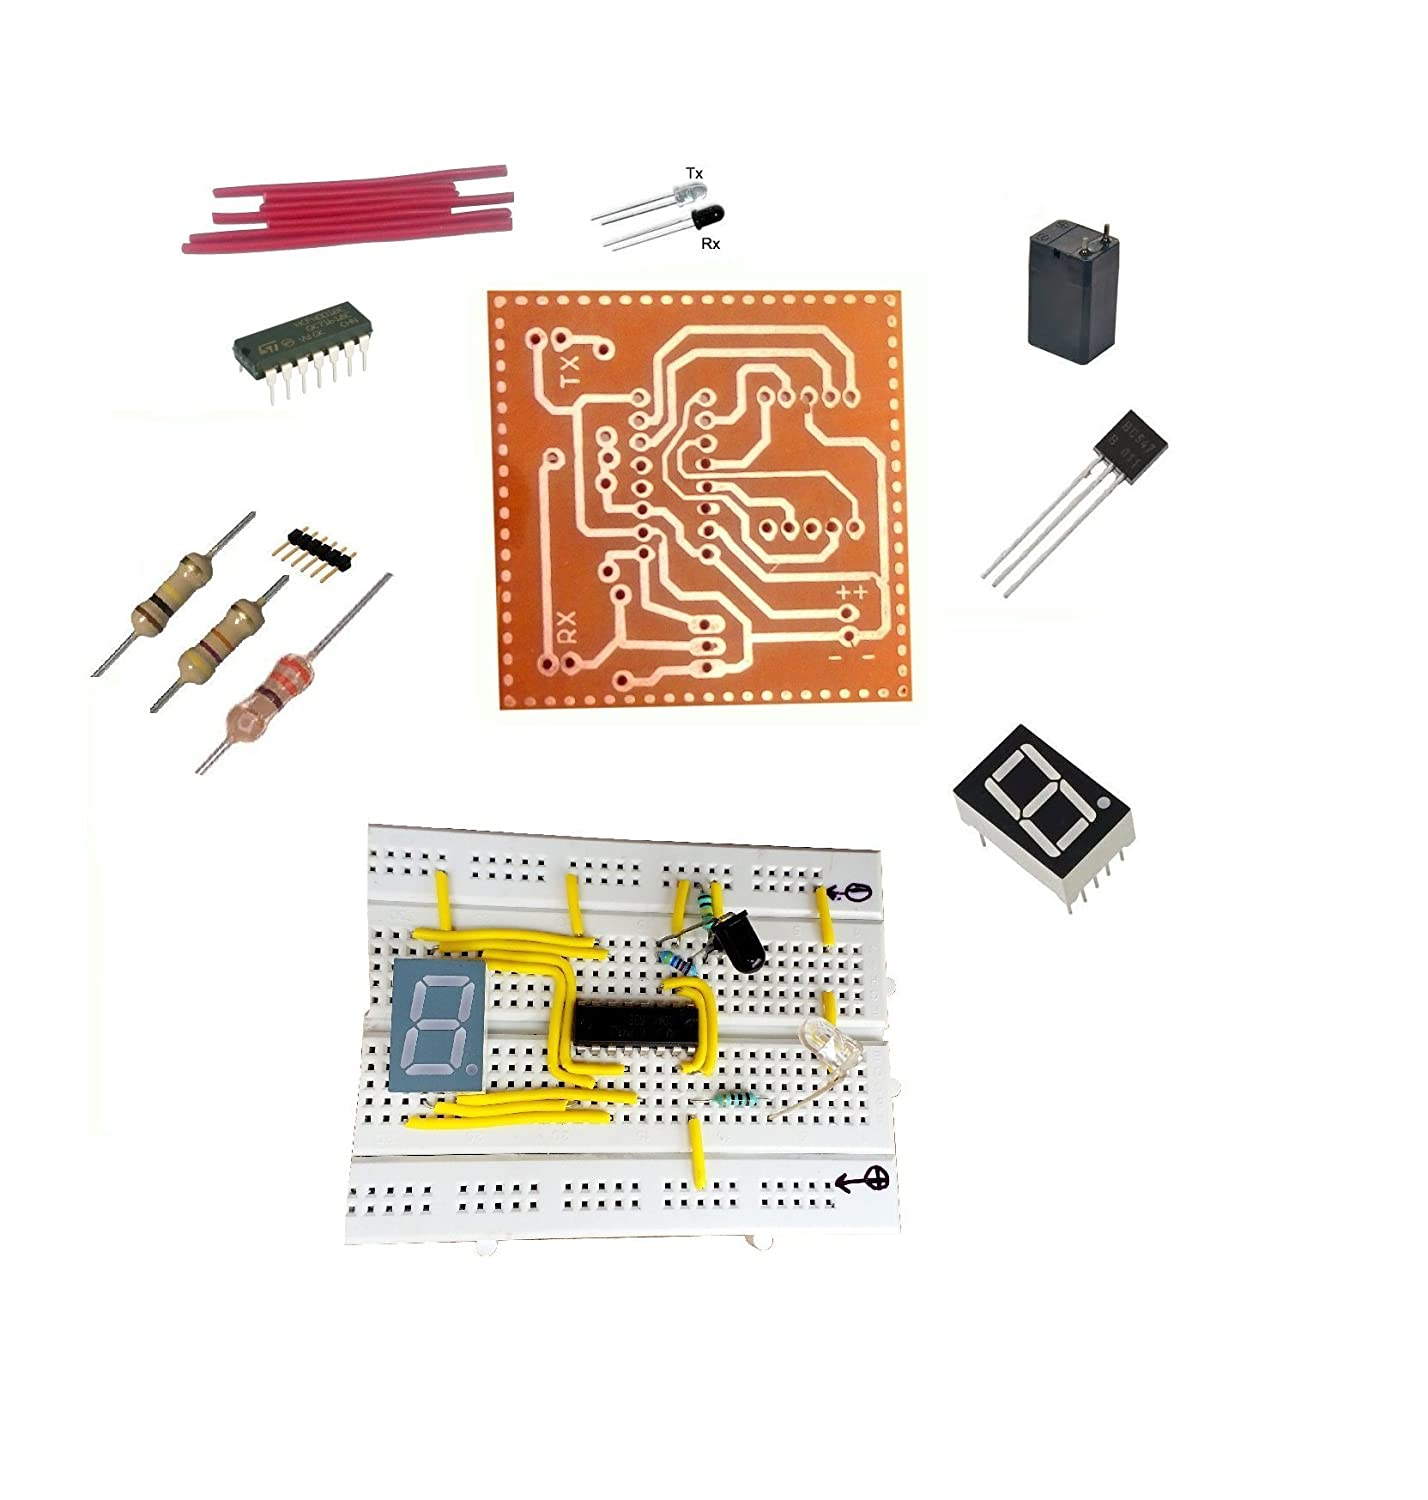 Global Traders Object Visitor Counter With Pcb Electronics Mini Volume Control Circuit Free Electronic Circuits 8085 Projects Project Industrial Scientific